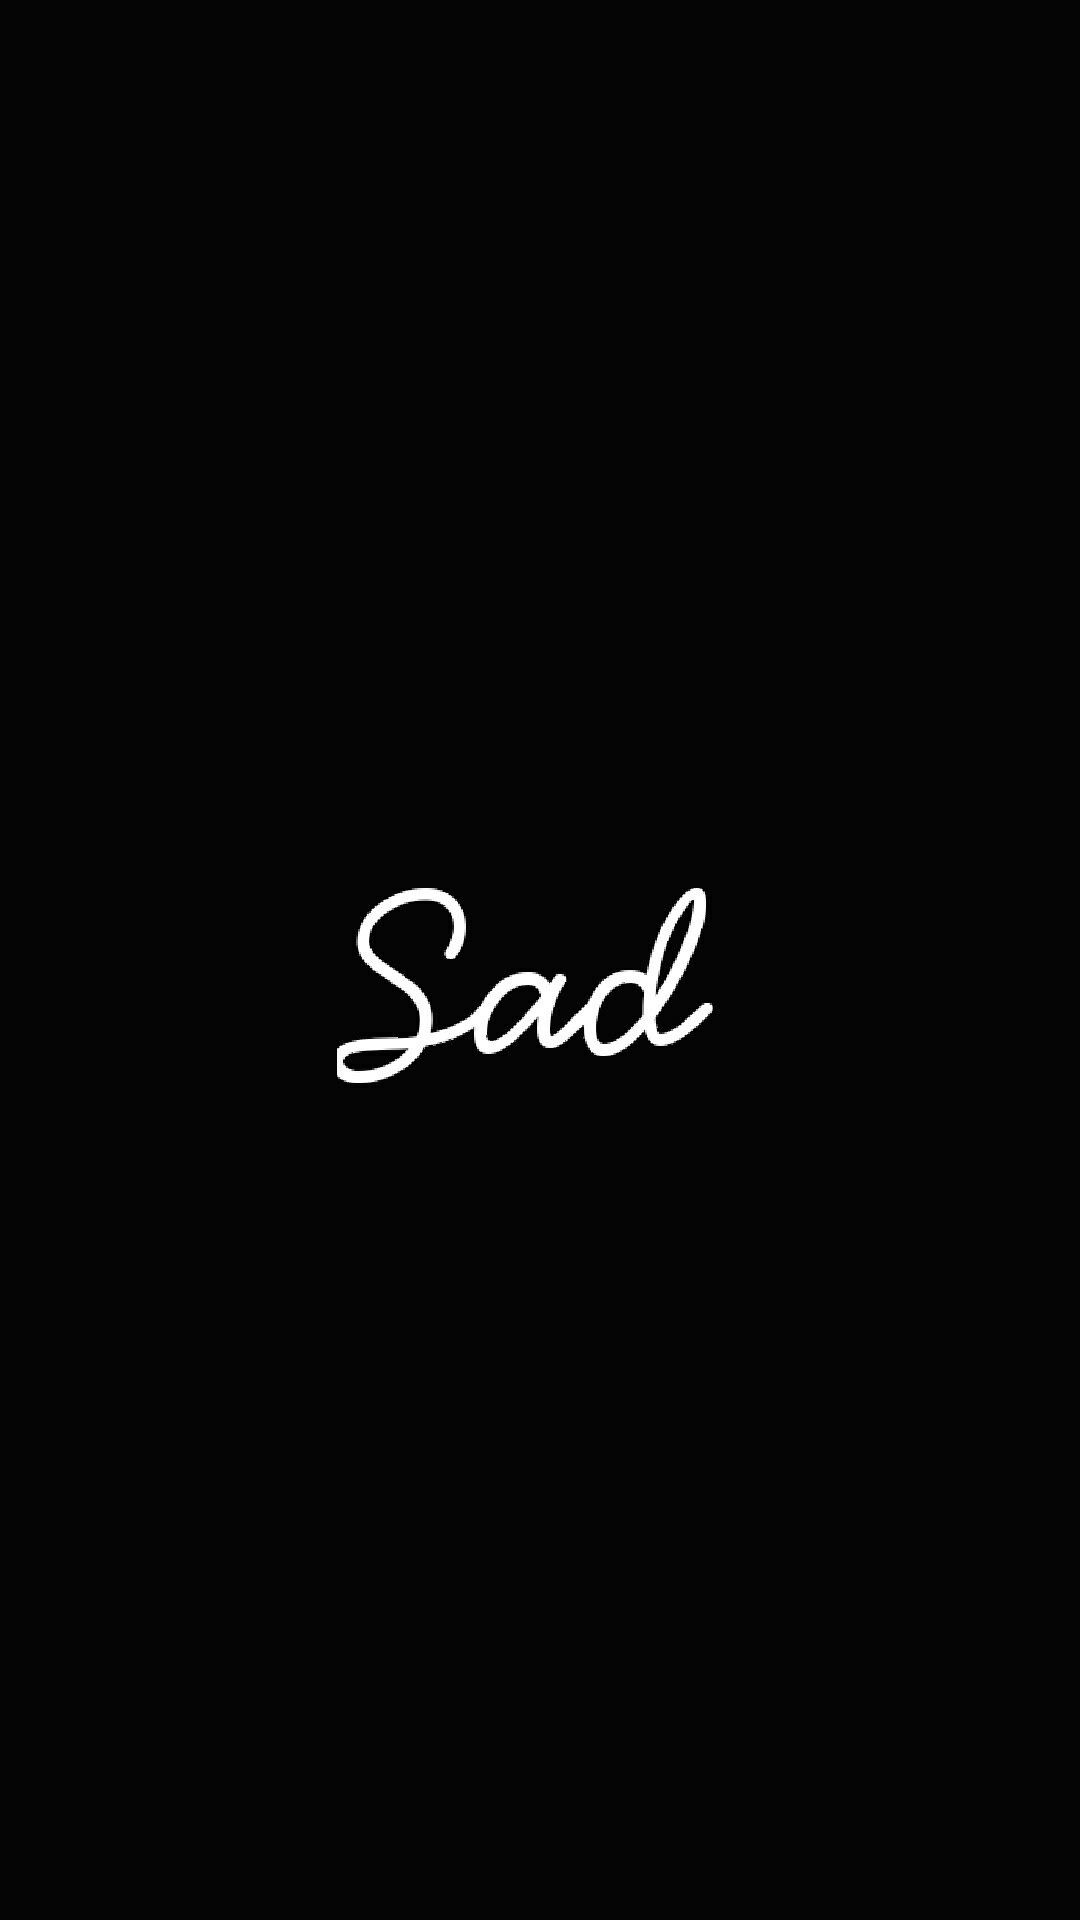 Depression Wallpapers 60 images